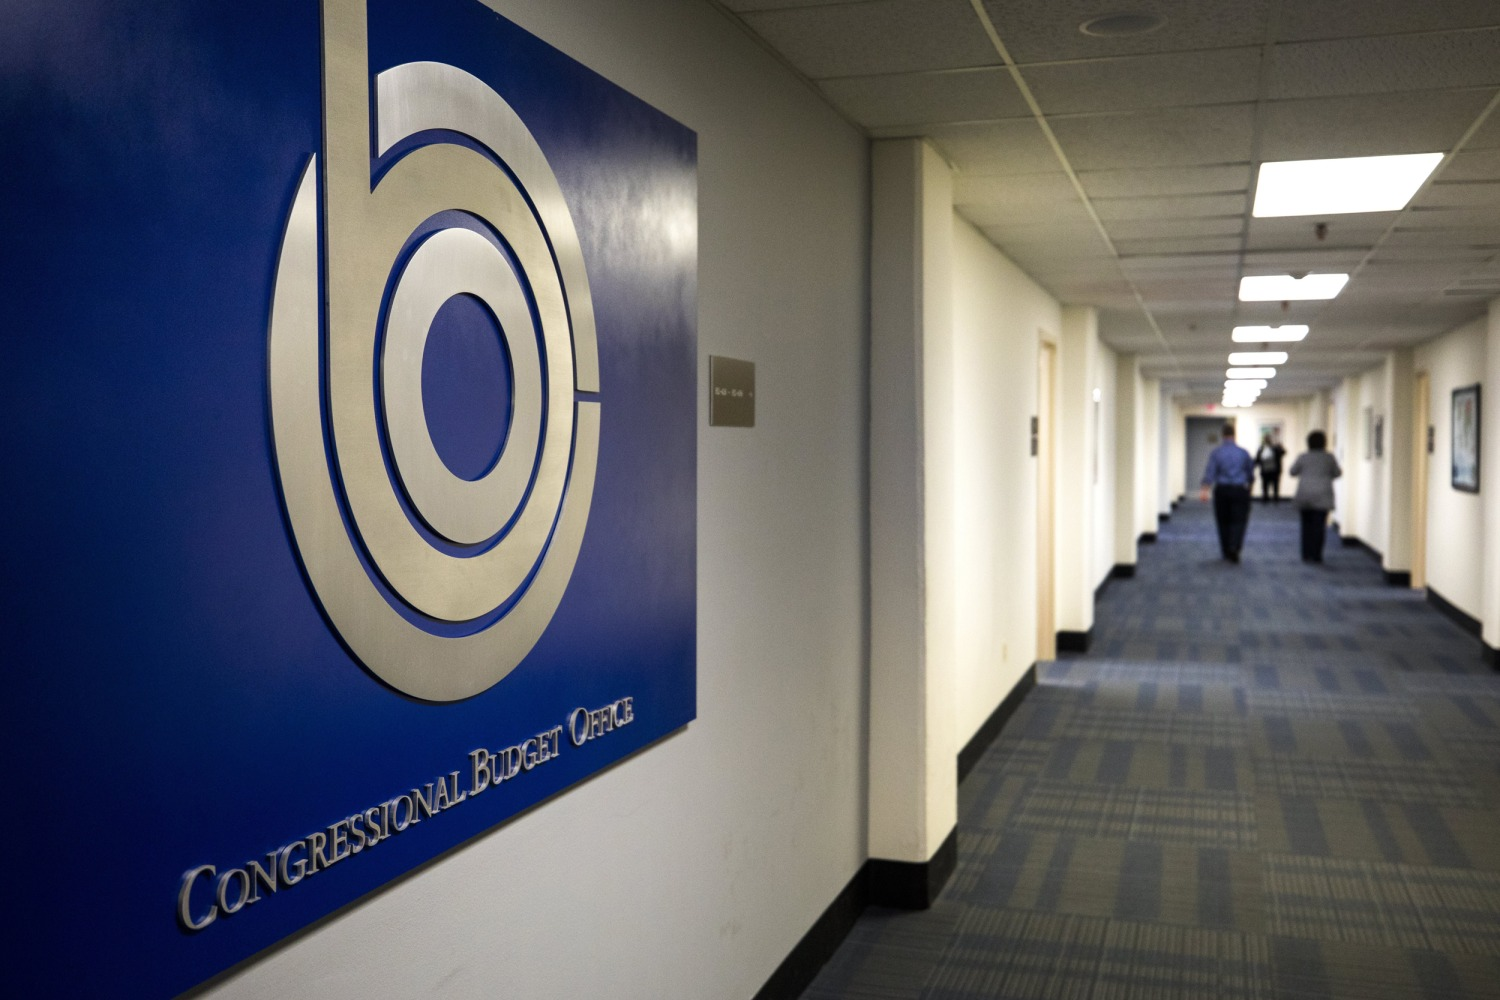 Congressional budget report could upset gop efforts to repeal obamacare nbc news - Congressional budget office ...